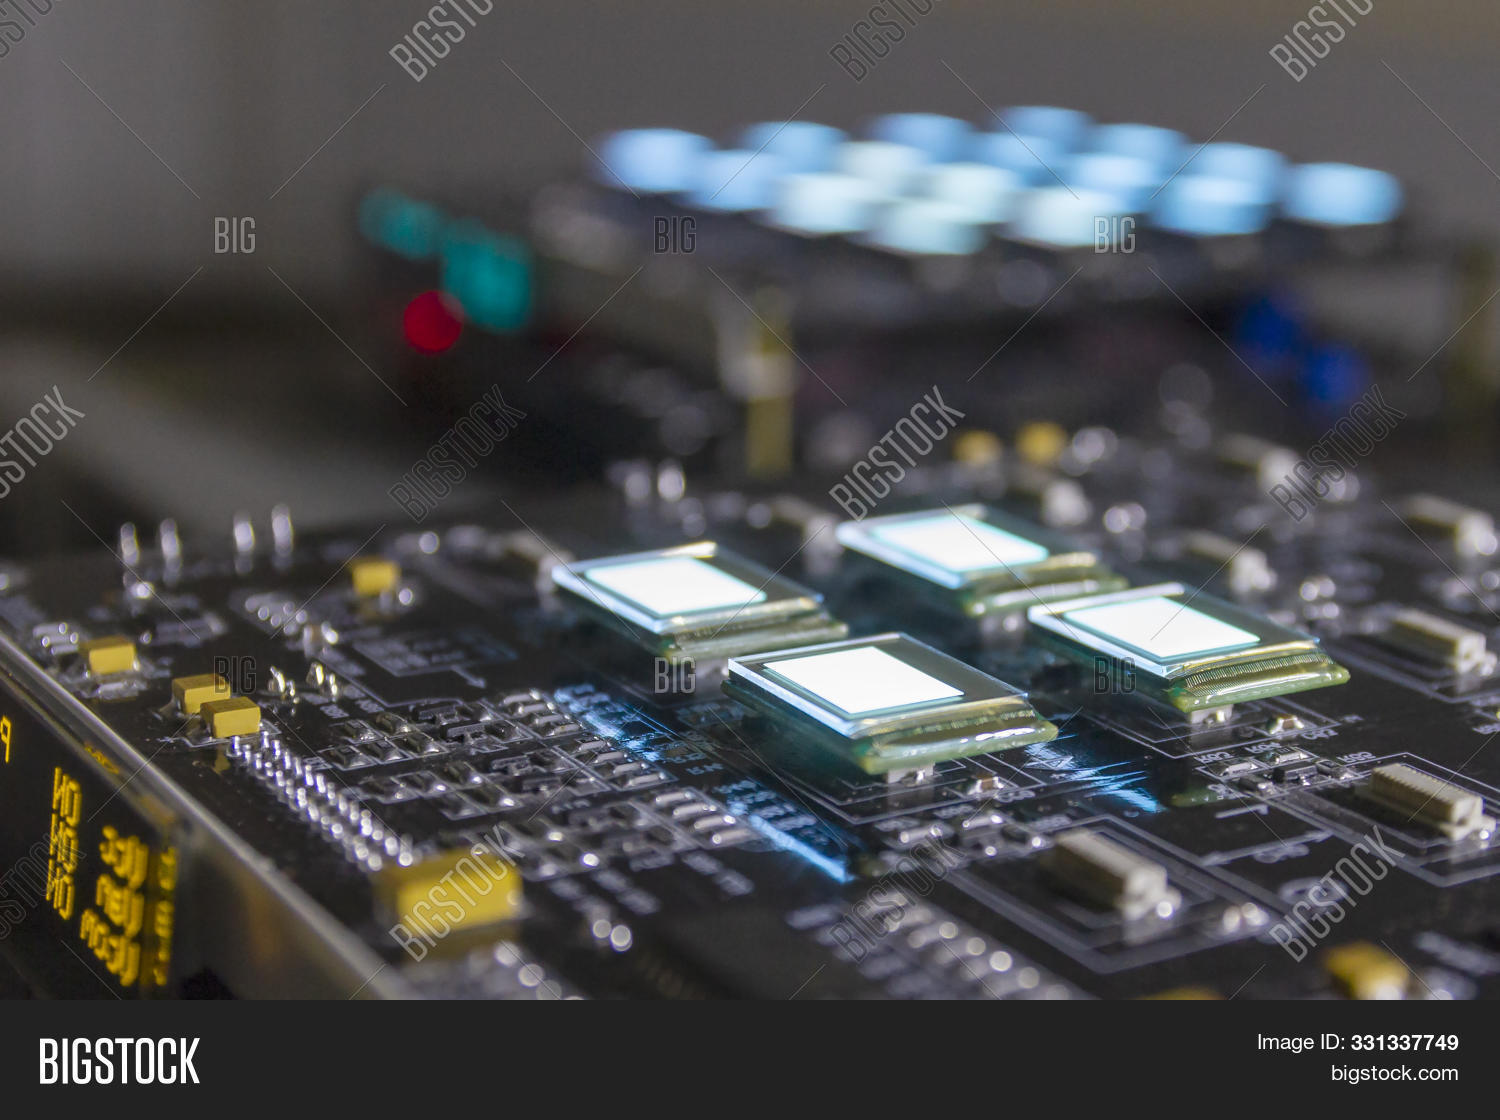 amoled,background,bit,board,developers,digital,display,education,educational,electronic,experiment,foundation,image,inch,lcd,led,light,macro,matrix,micro,microdispay,mobile,monitor,new,oled,oledchip,part,pcb,phone,photo,pixel,plasma,probestation,qled,rgb,science,screen,size,small,technology,thin,tiny,tv,vr,white